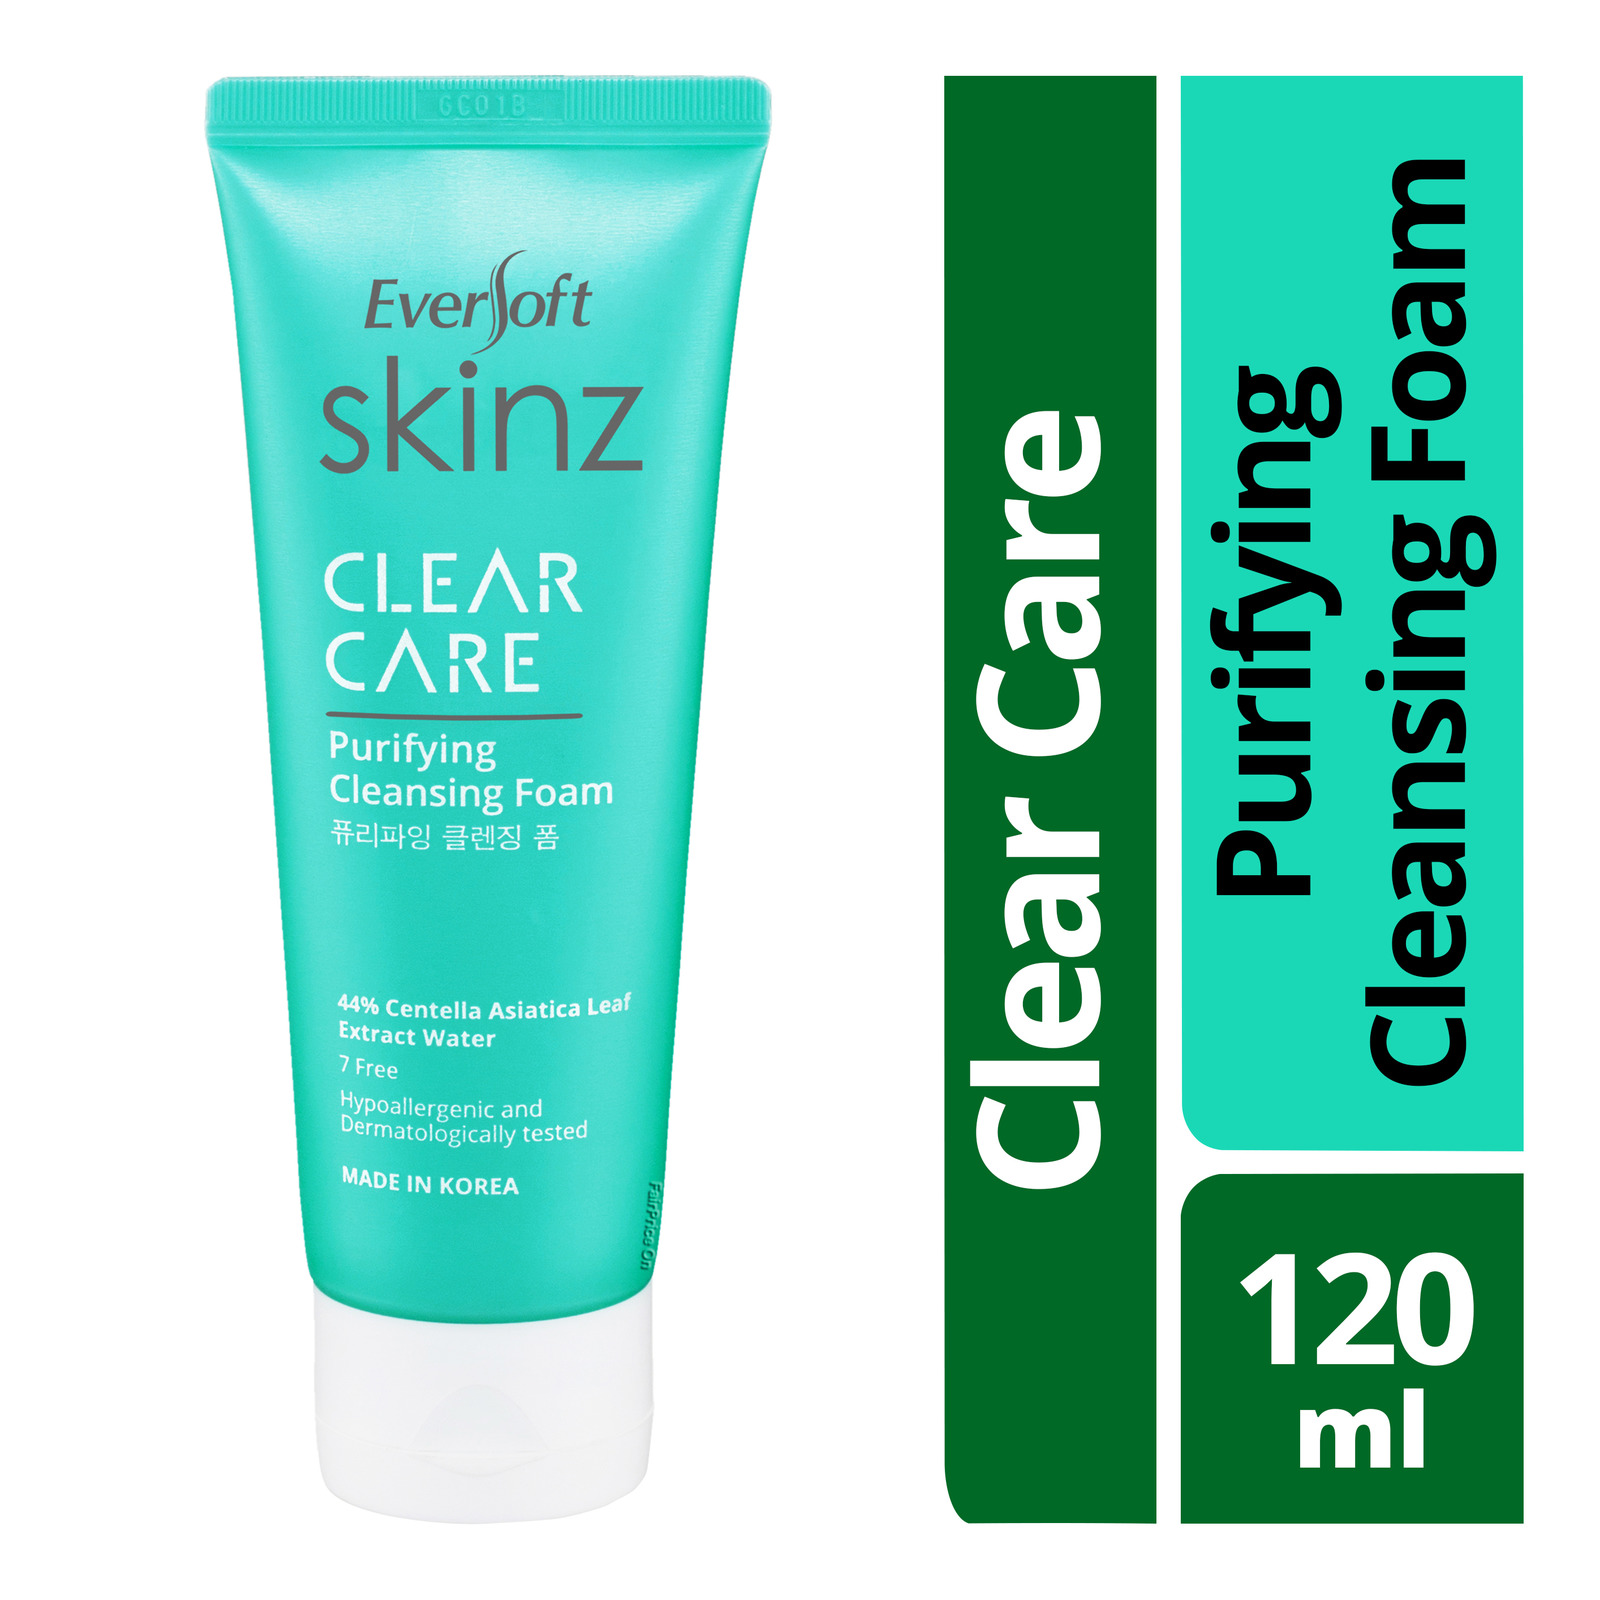 Eversoft Skinz Clear Care Purifying Cleansing Foam